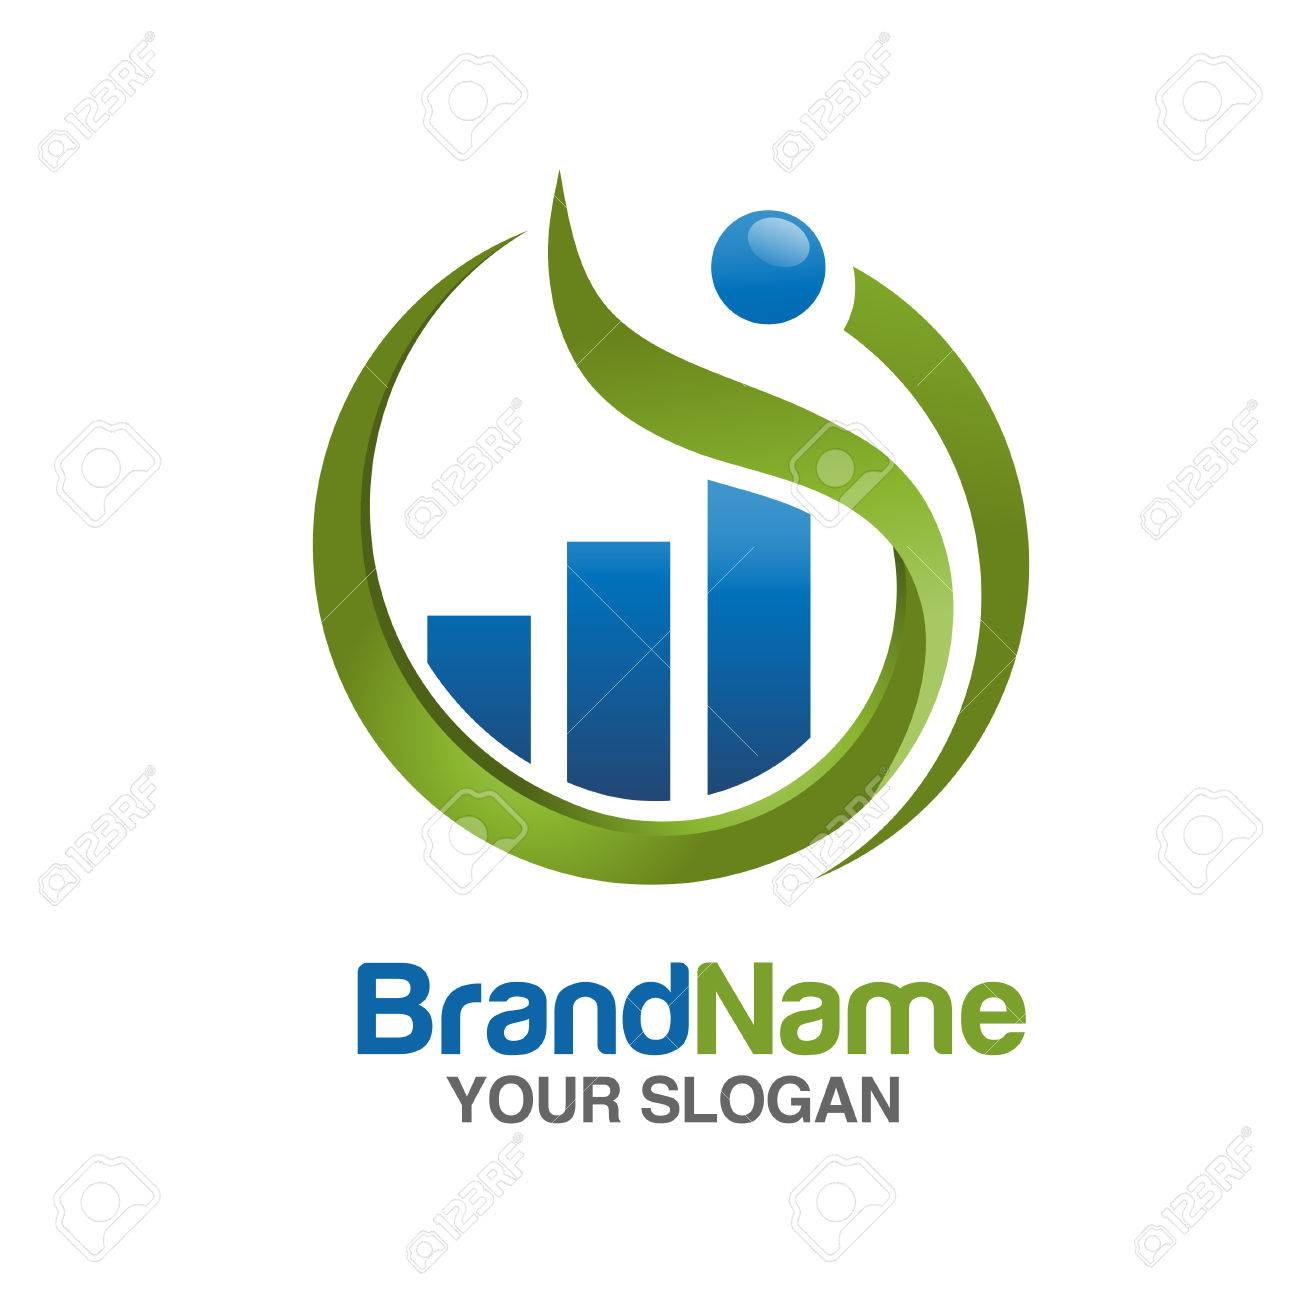 Marketing and finance logo royalty free cliparts vectors and stock marketing and finance logo stock vector 54448972 altavistaventures Choice Image